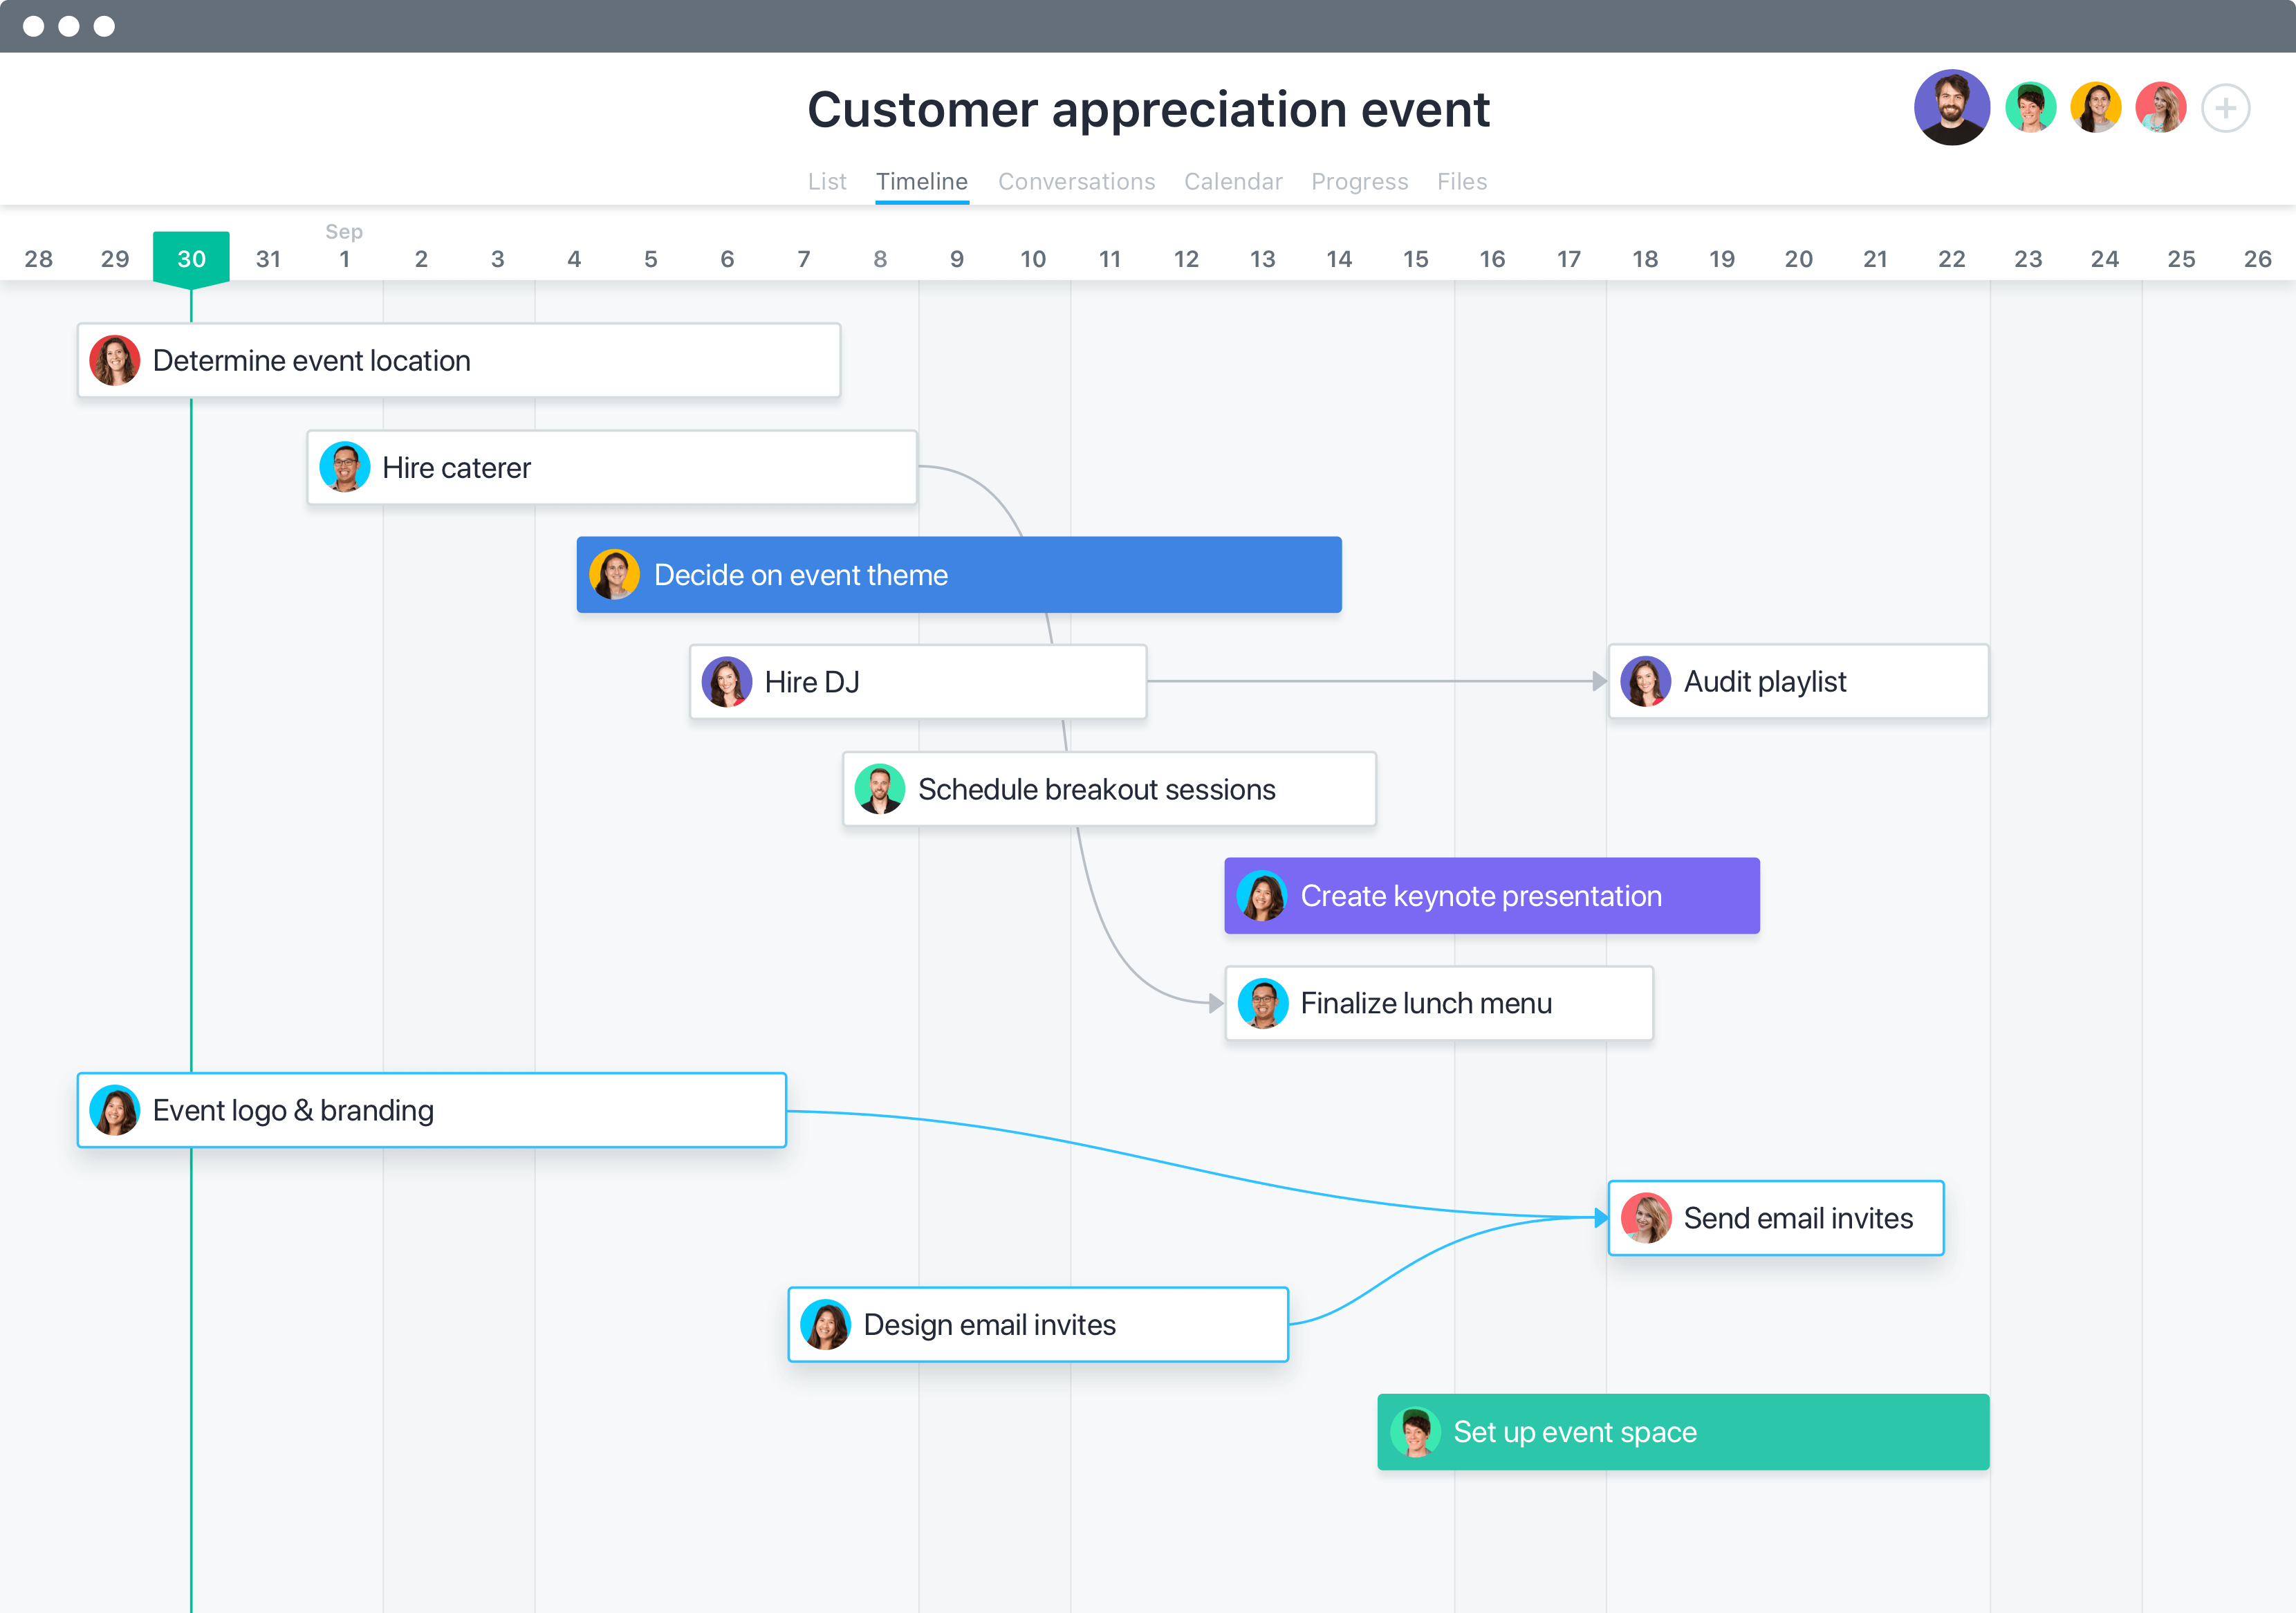 Event appreciation timeline in Asana